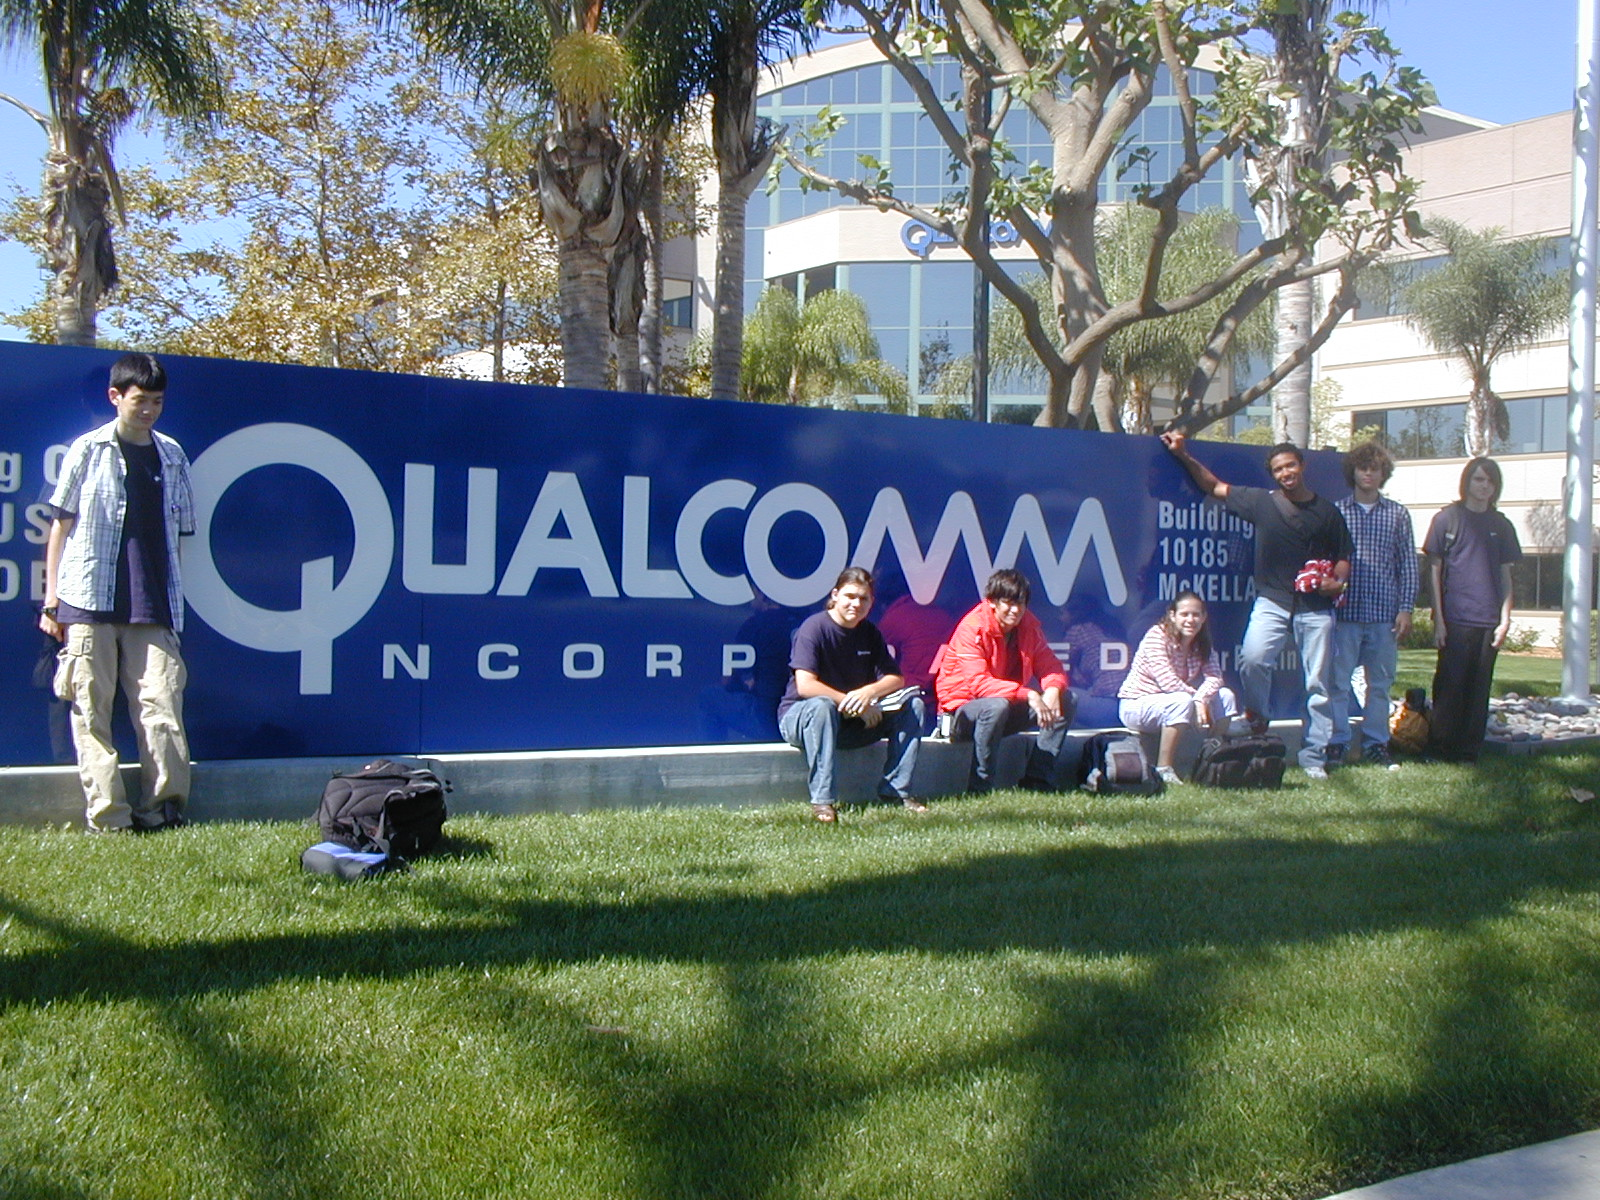 Innovation Qualcomm 2010